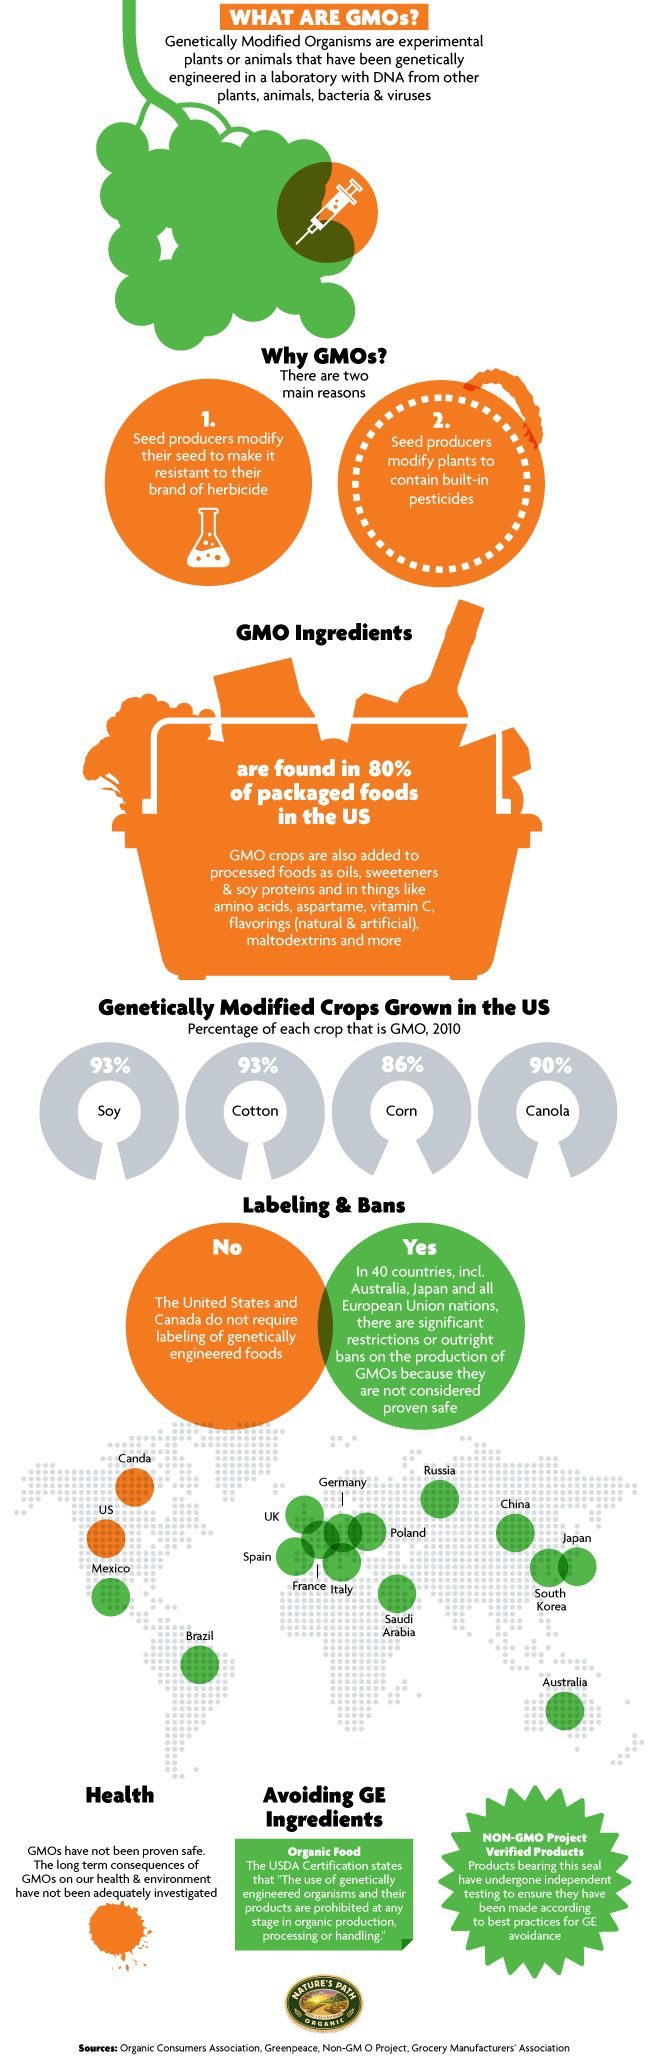 How can consumers protect themselves from genetically modified foods